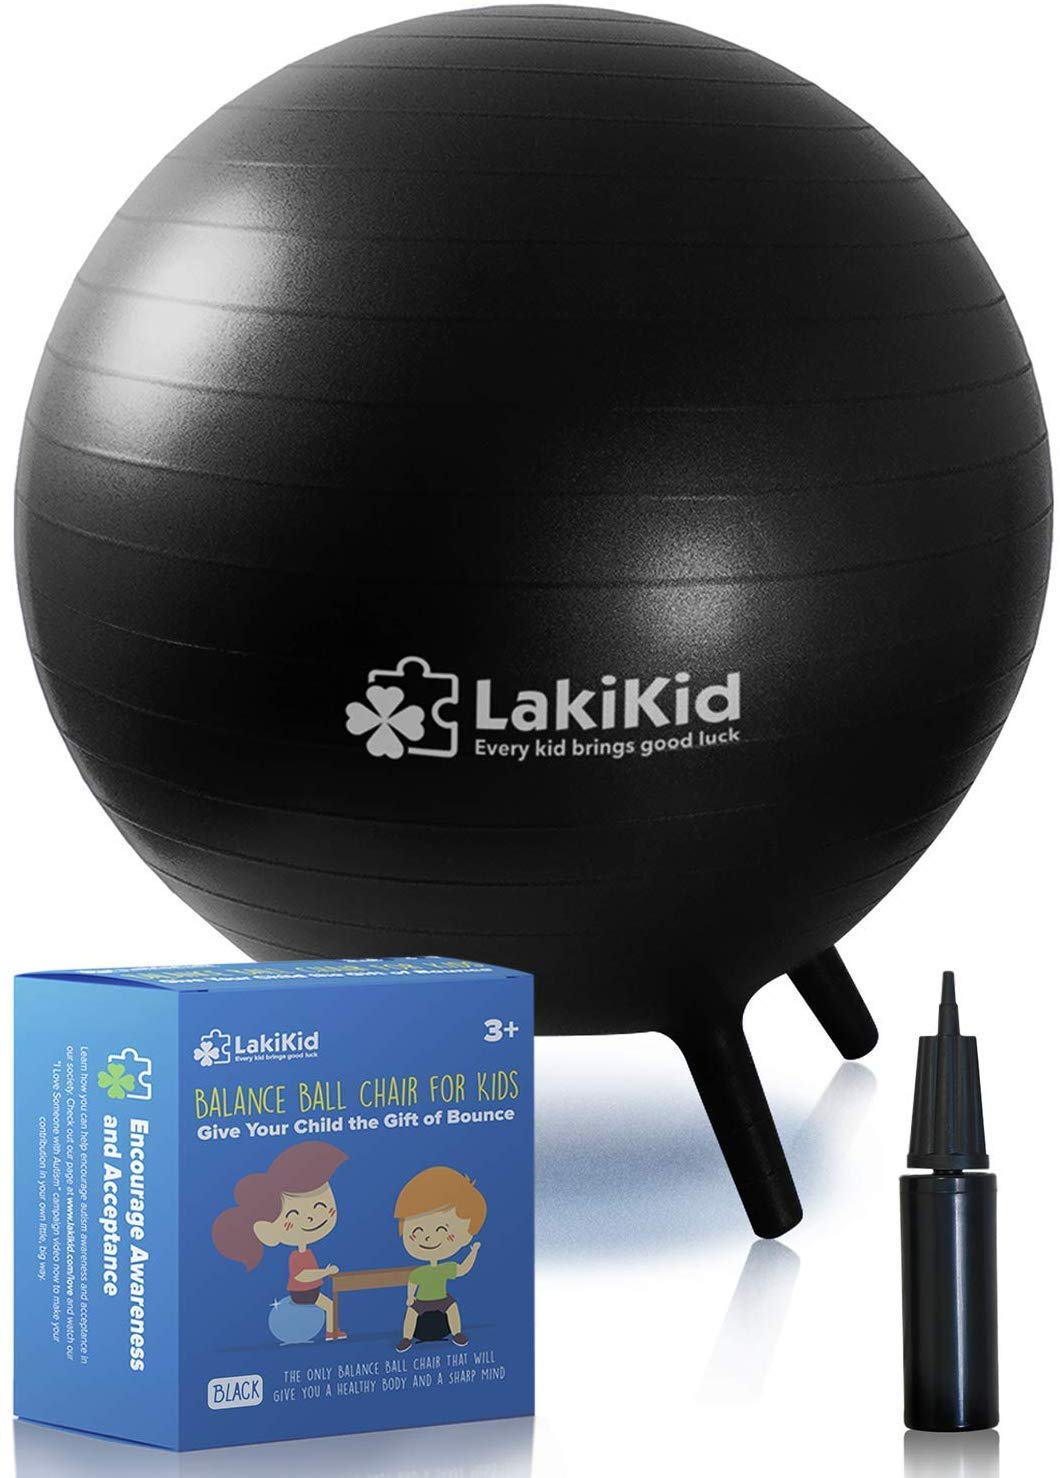 LakiKid Balance Ball Chairs for Kids Flexible Seating Classroom Furniture- Stability Ball Chairs with Legs, Exercise Ball Chair, Yoga Ball Chair, ...